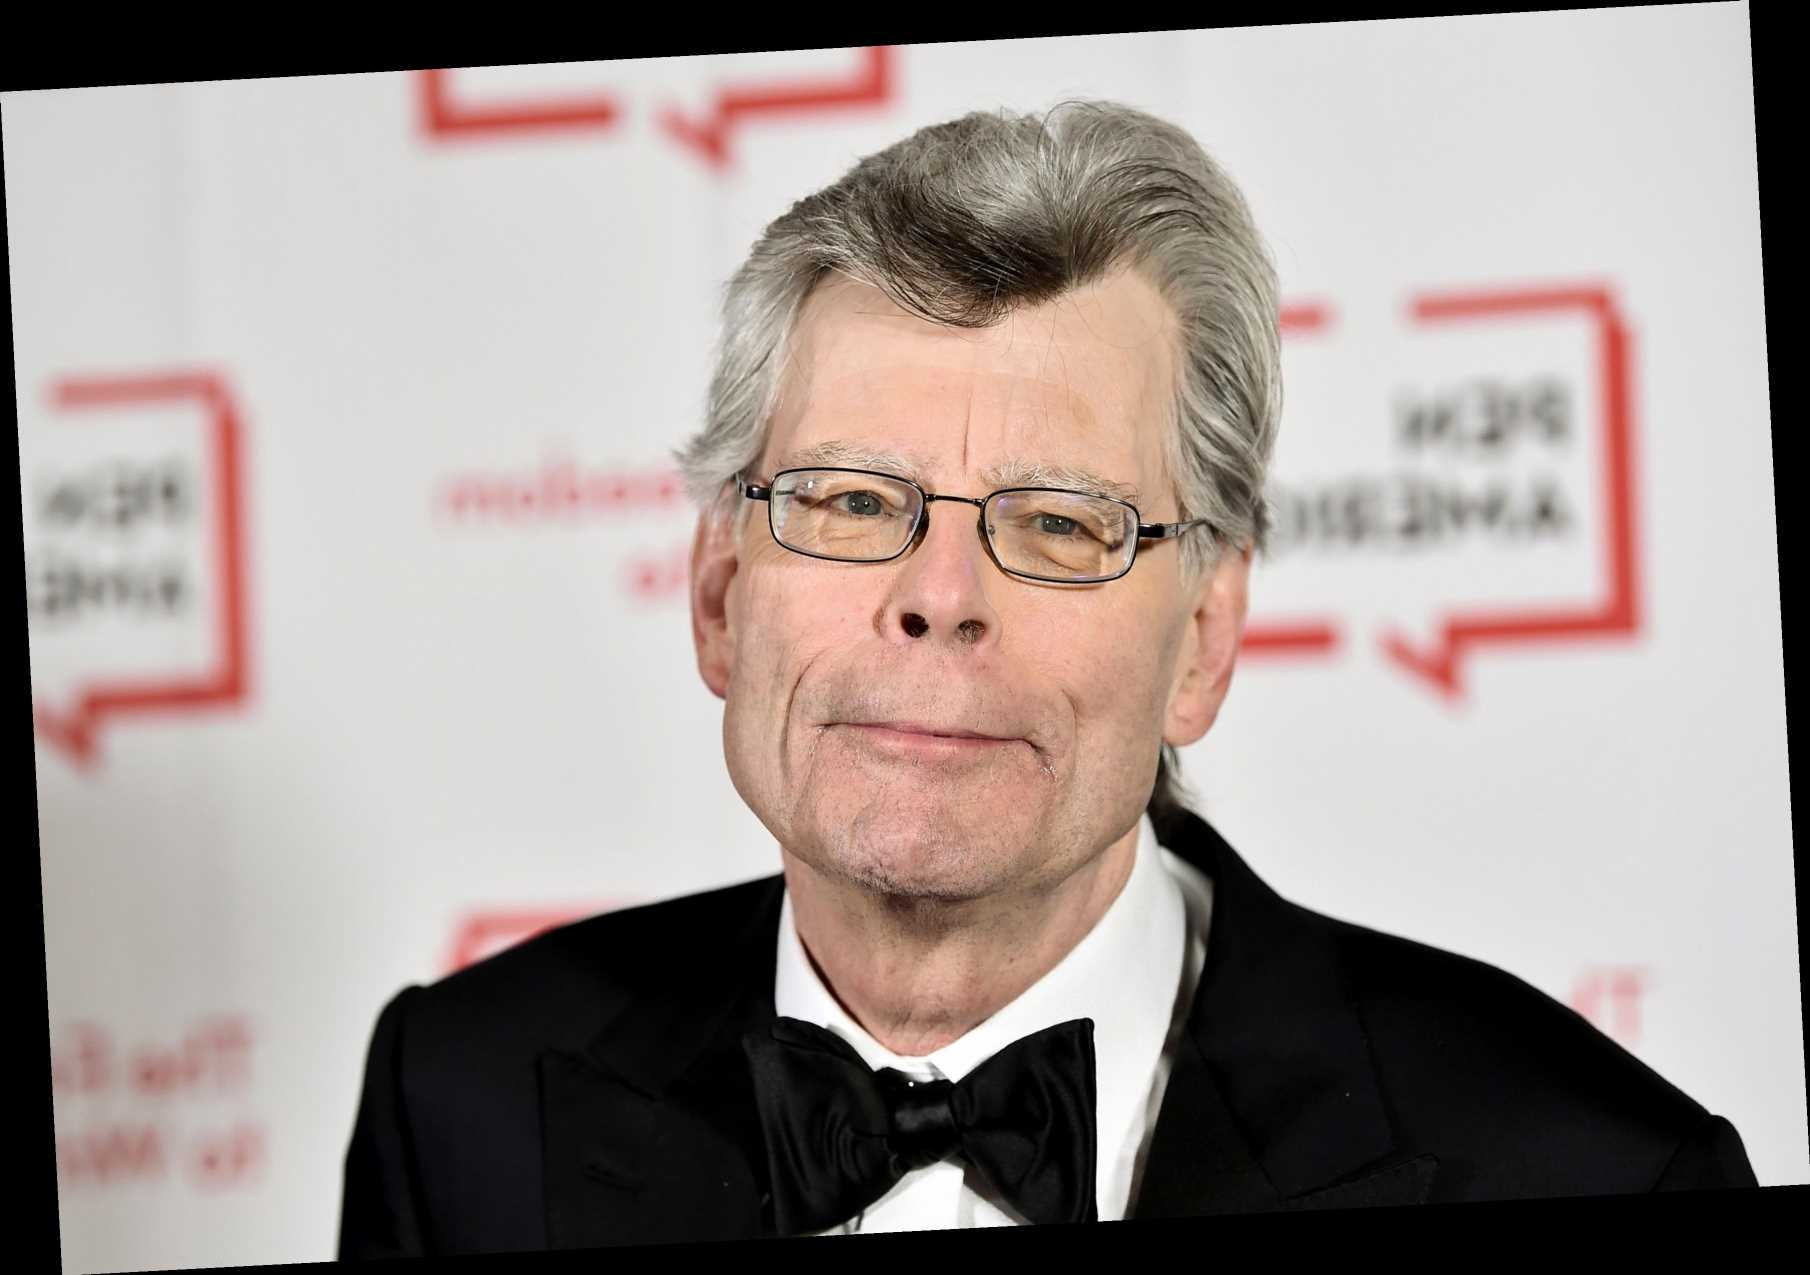 Stephen King Argues That the Oscars Are 'Still Rigged In Favor of White People'